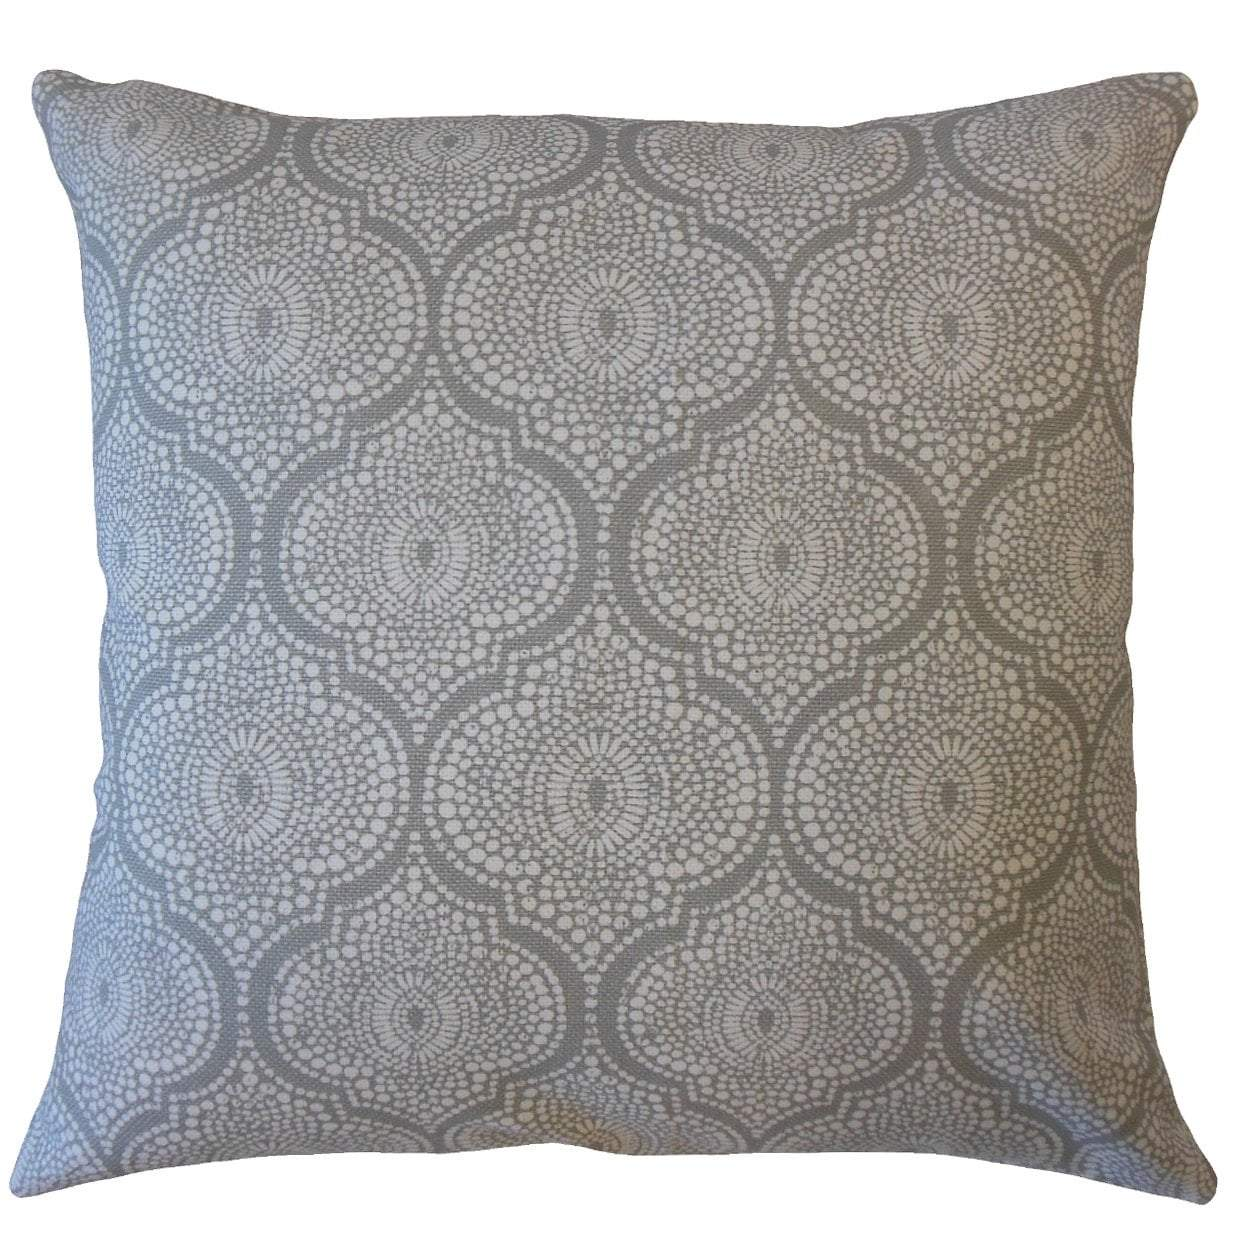 Gray Cotton Geometric Traditional Throw Pillow Cover